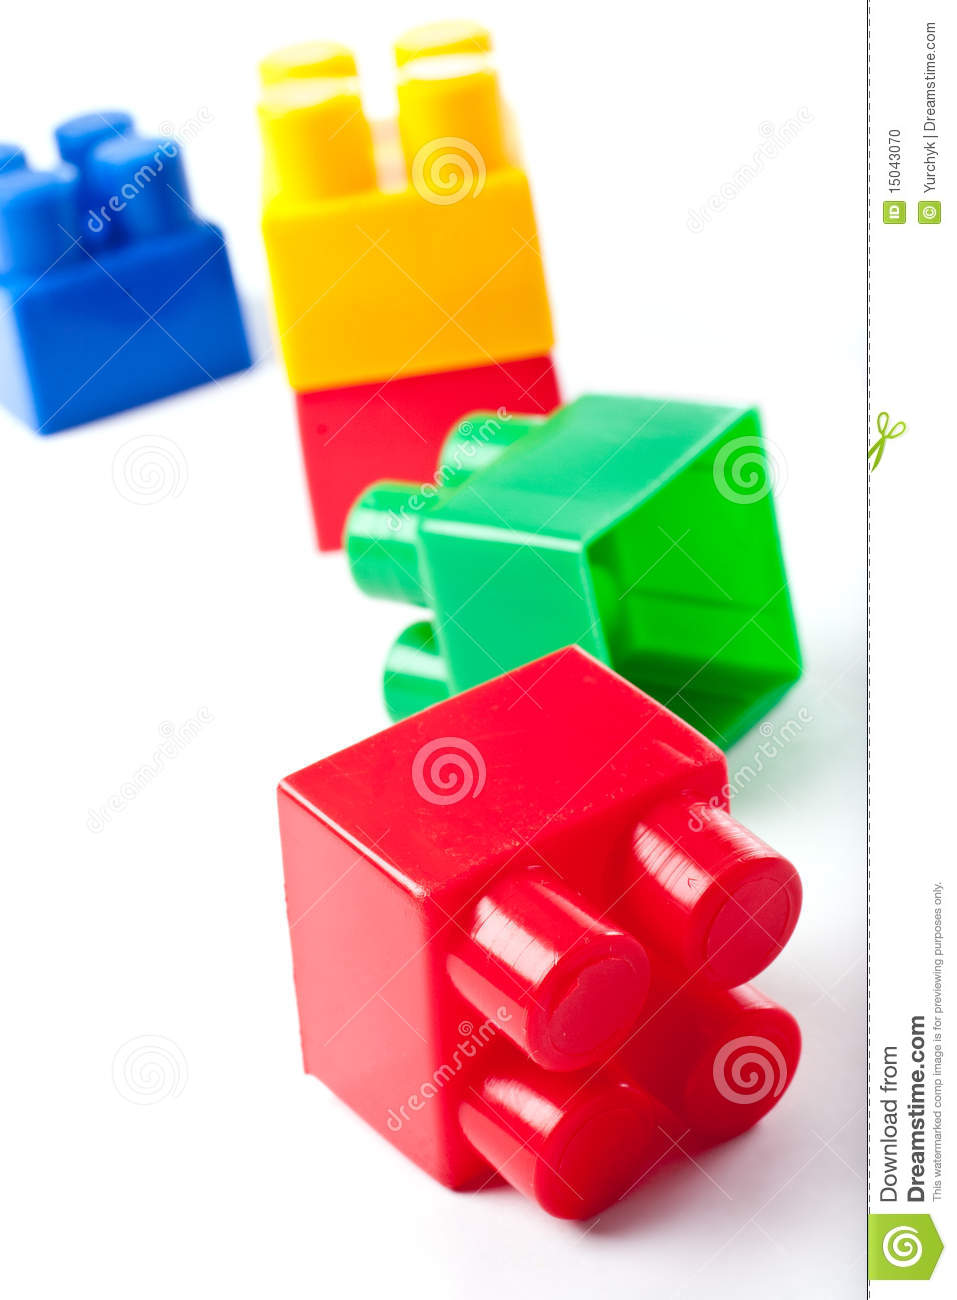 Colorful isolated building blocks toy